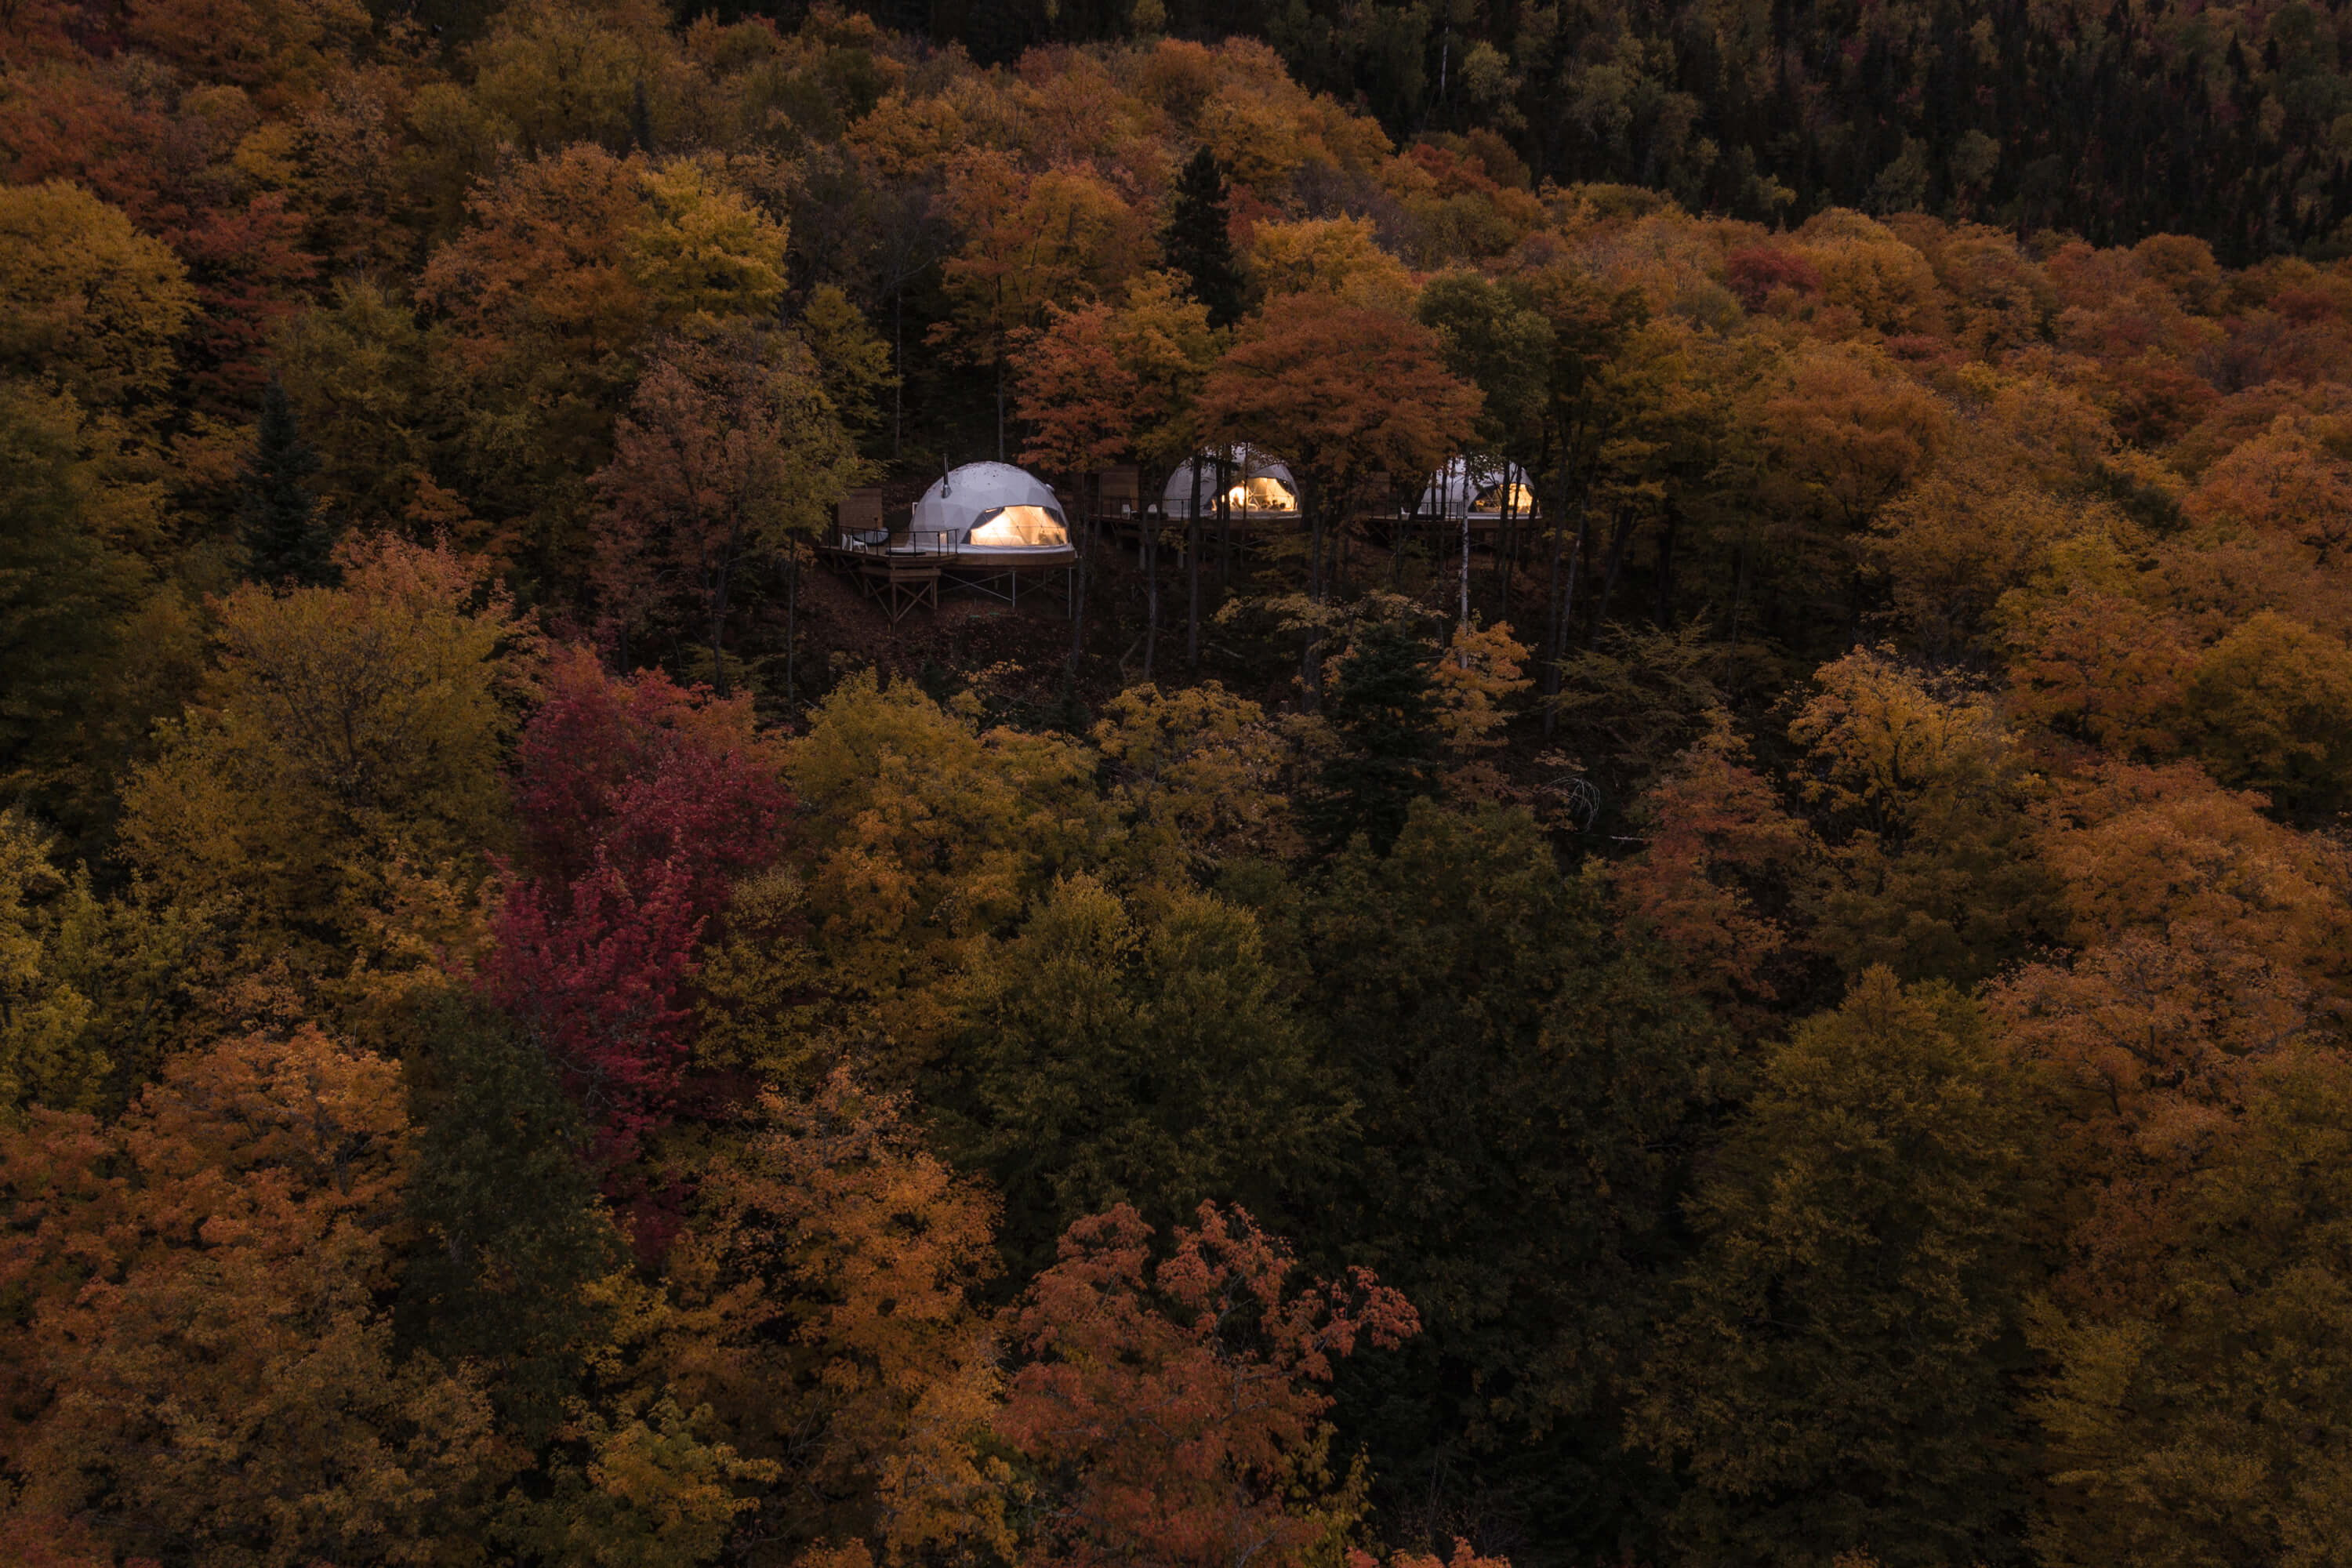 Dômes de Charlevoix – Glamping Domes in Quebec Forest